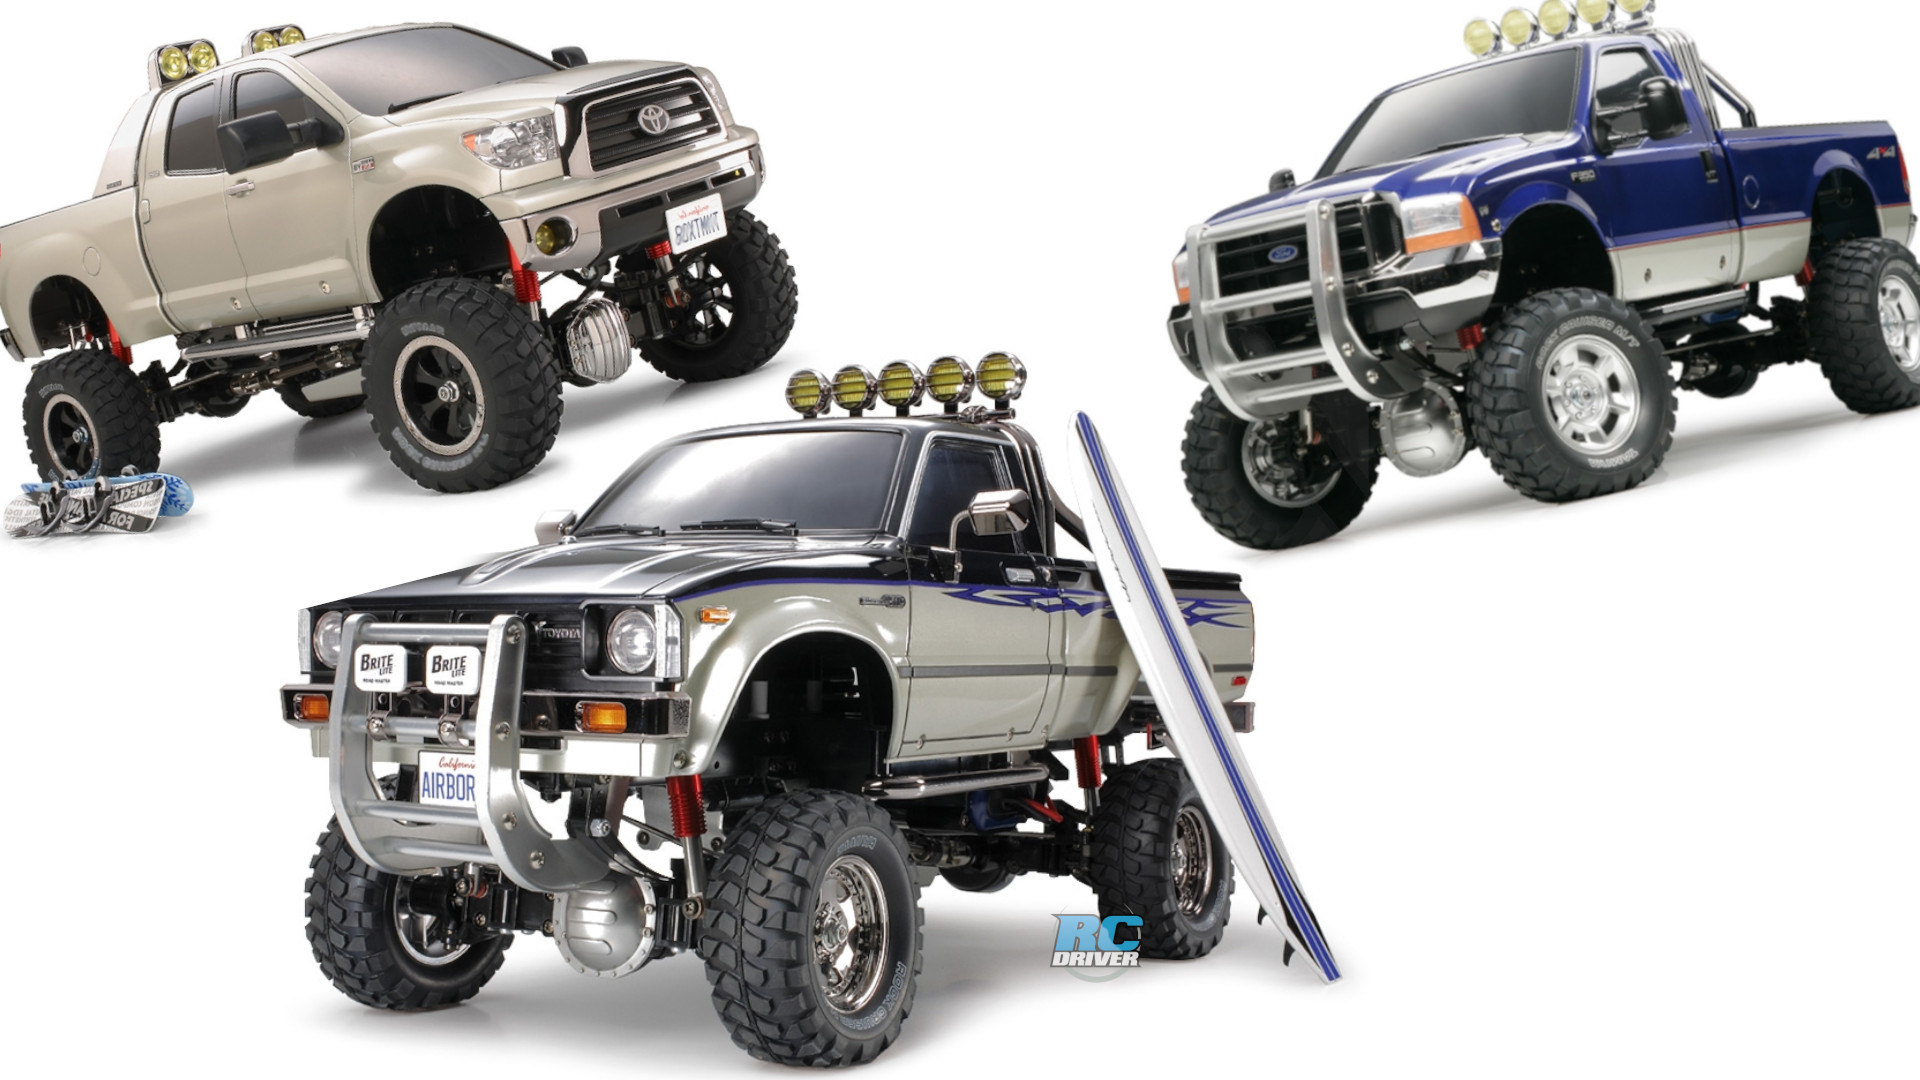 Tamiya's Awesome High-Lift 4x4 3-Speed Pick-Ups